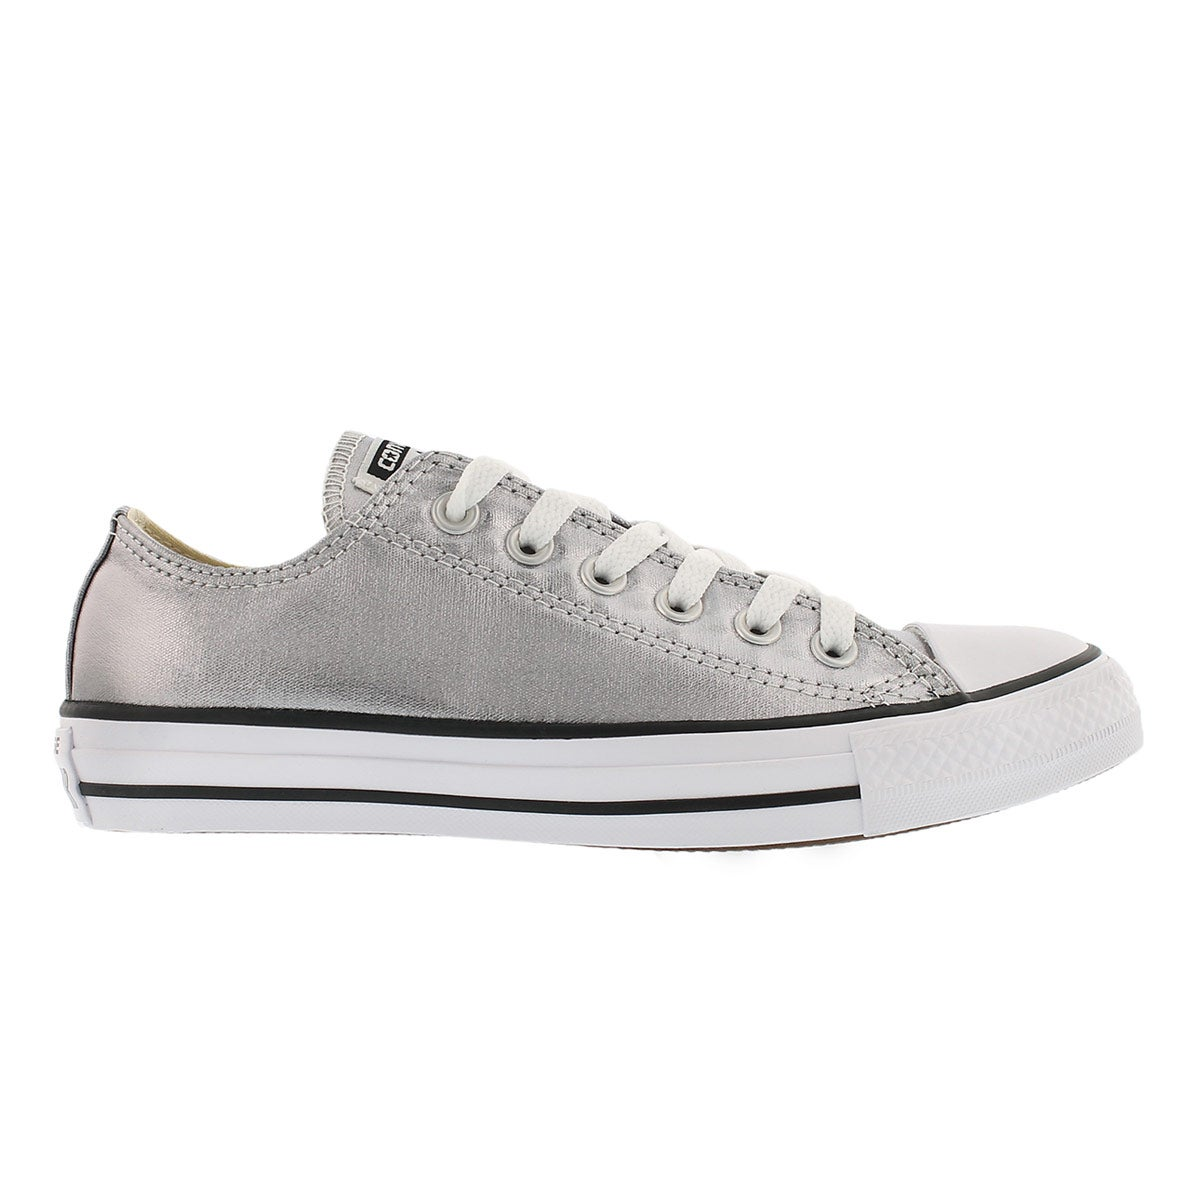 Lds CT A/S Seasonal Metallic gun sneaker